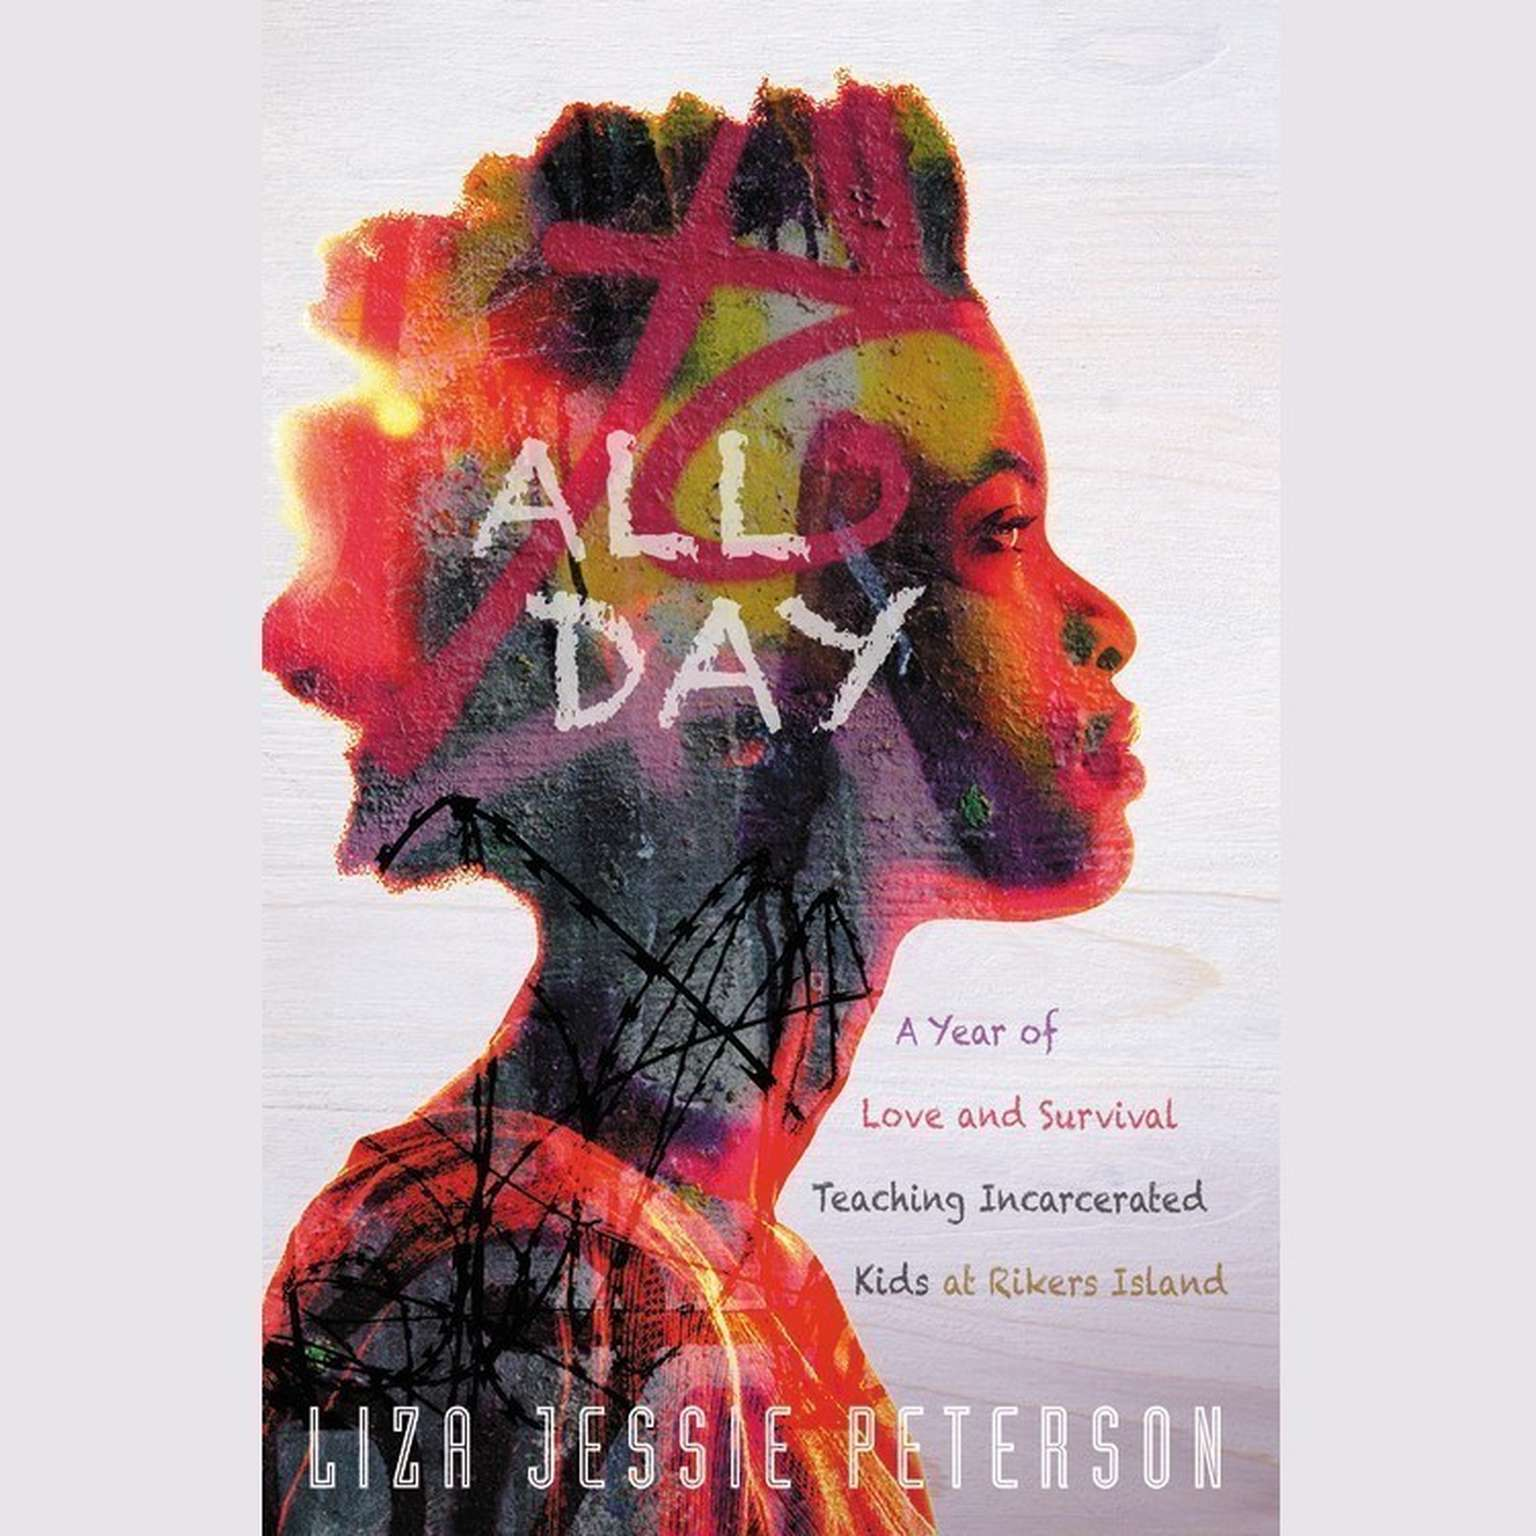 Printable All Day: A Year of Love and Survival Teaching Incarcerated Kids at Rikers Island Audiobook Cover Art